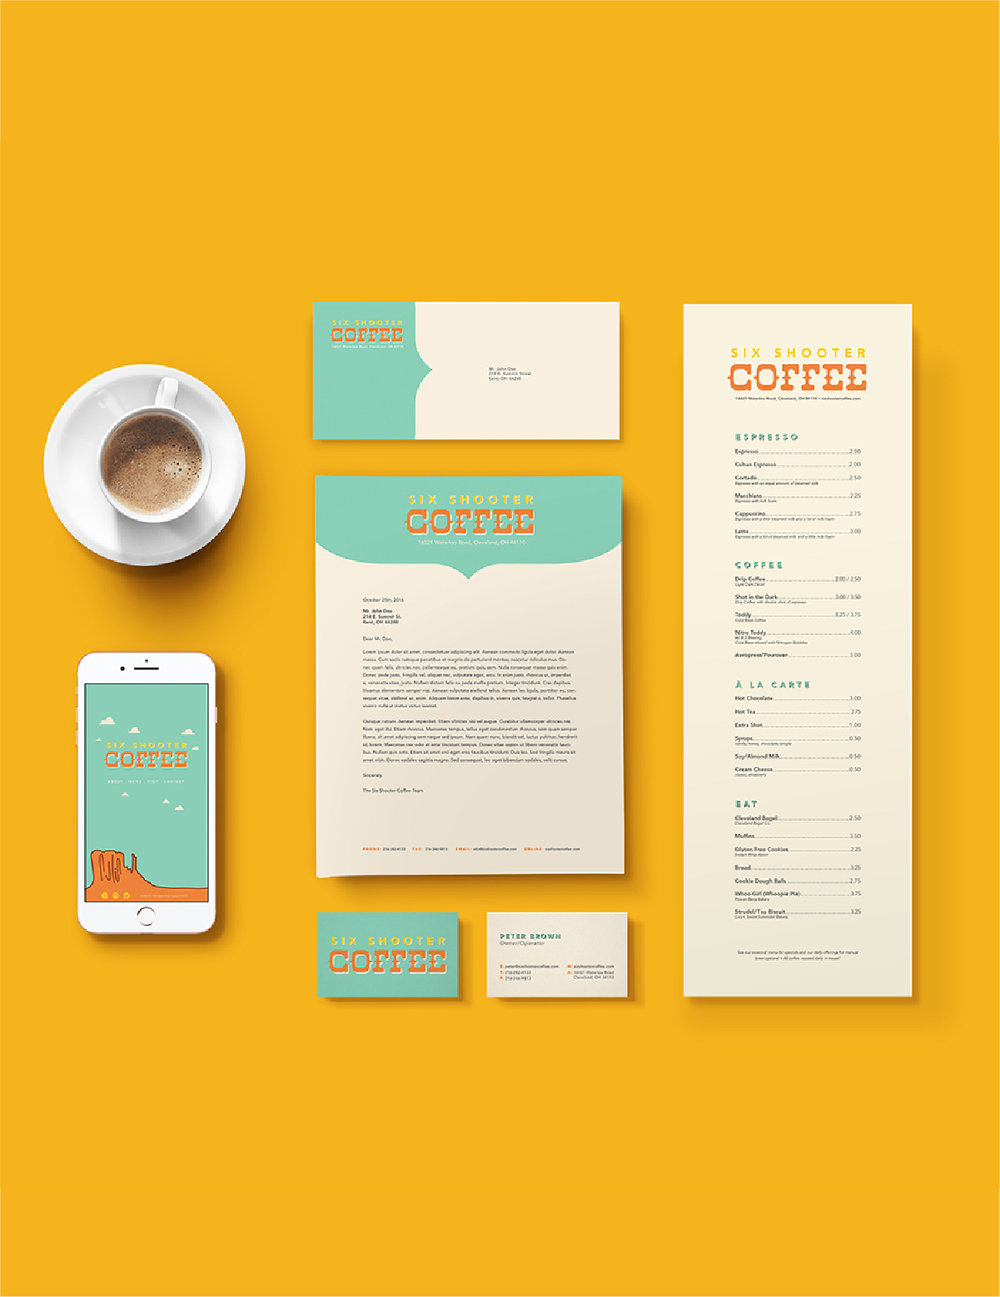 SIX SHOOTER COFFEE BRANDING